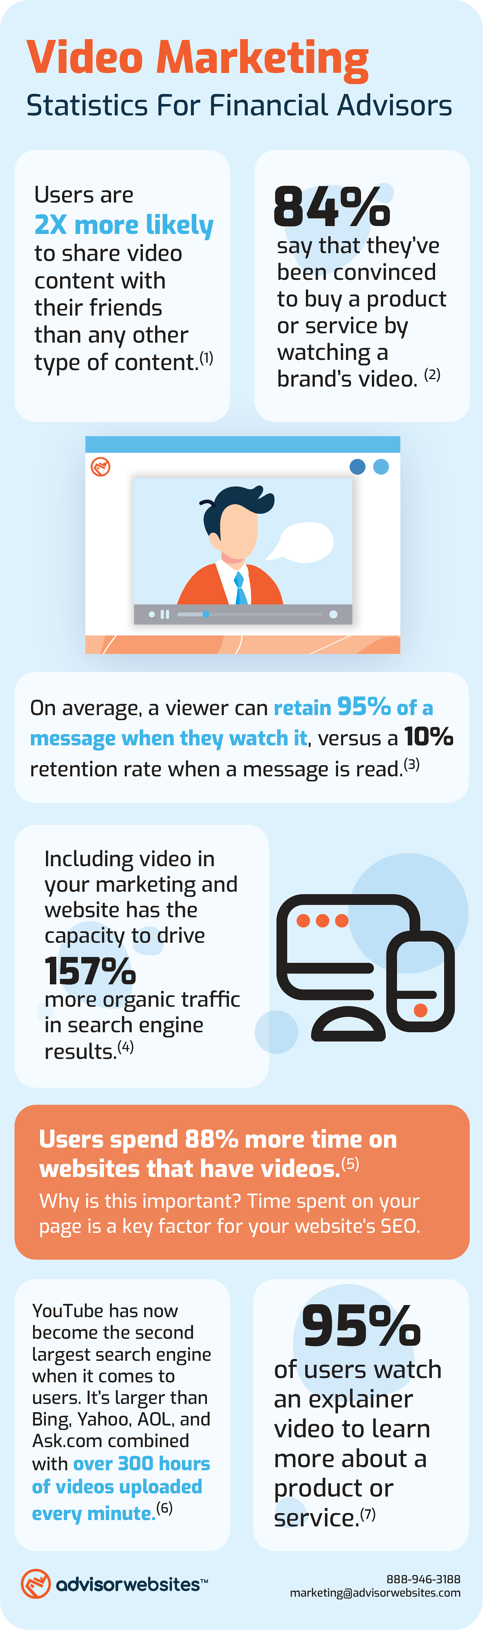 Video Marketing Infographic - AdvisorWebsites.com